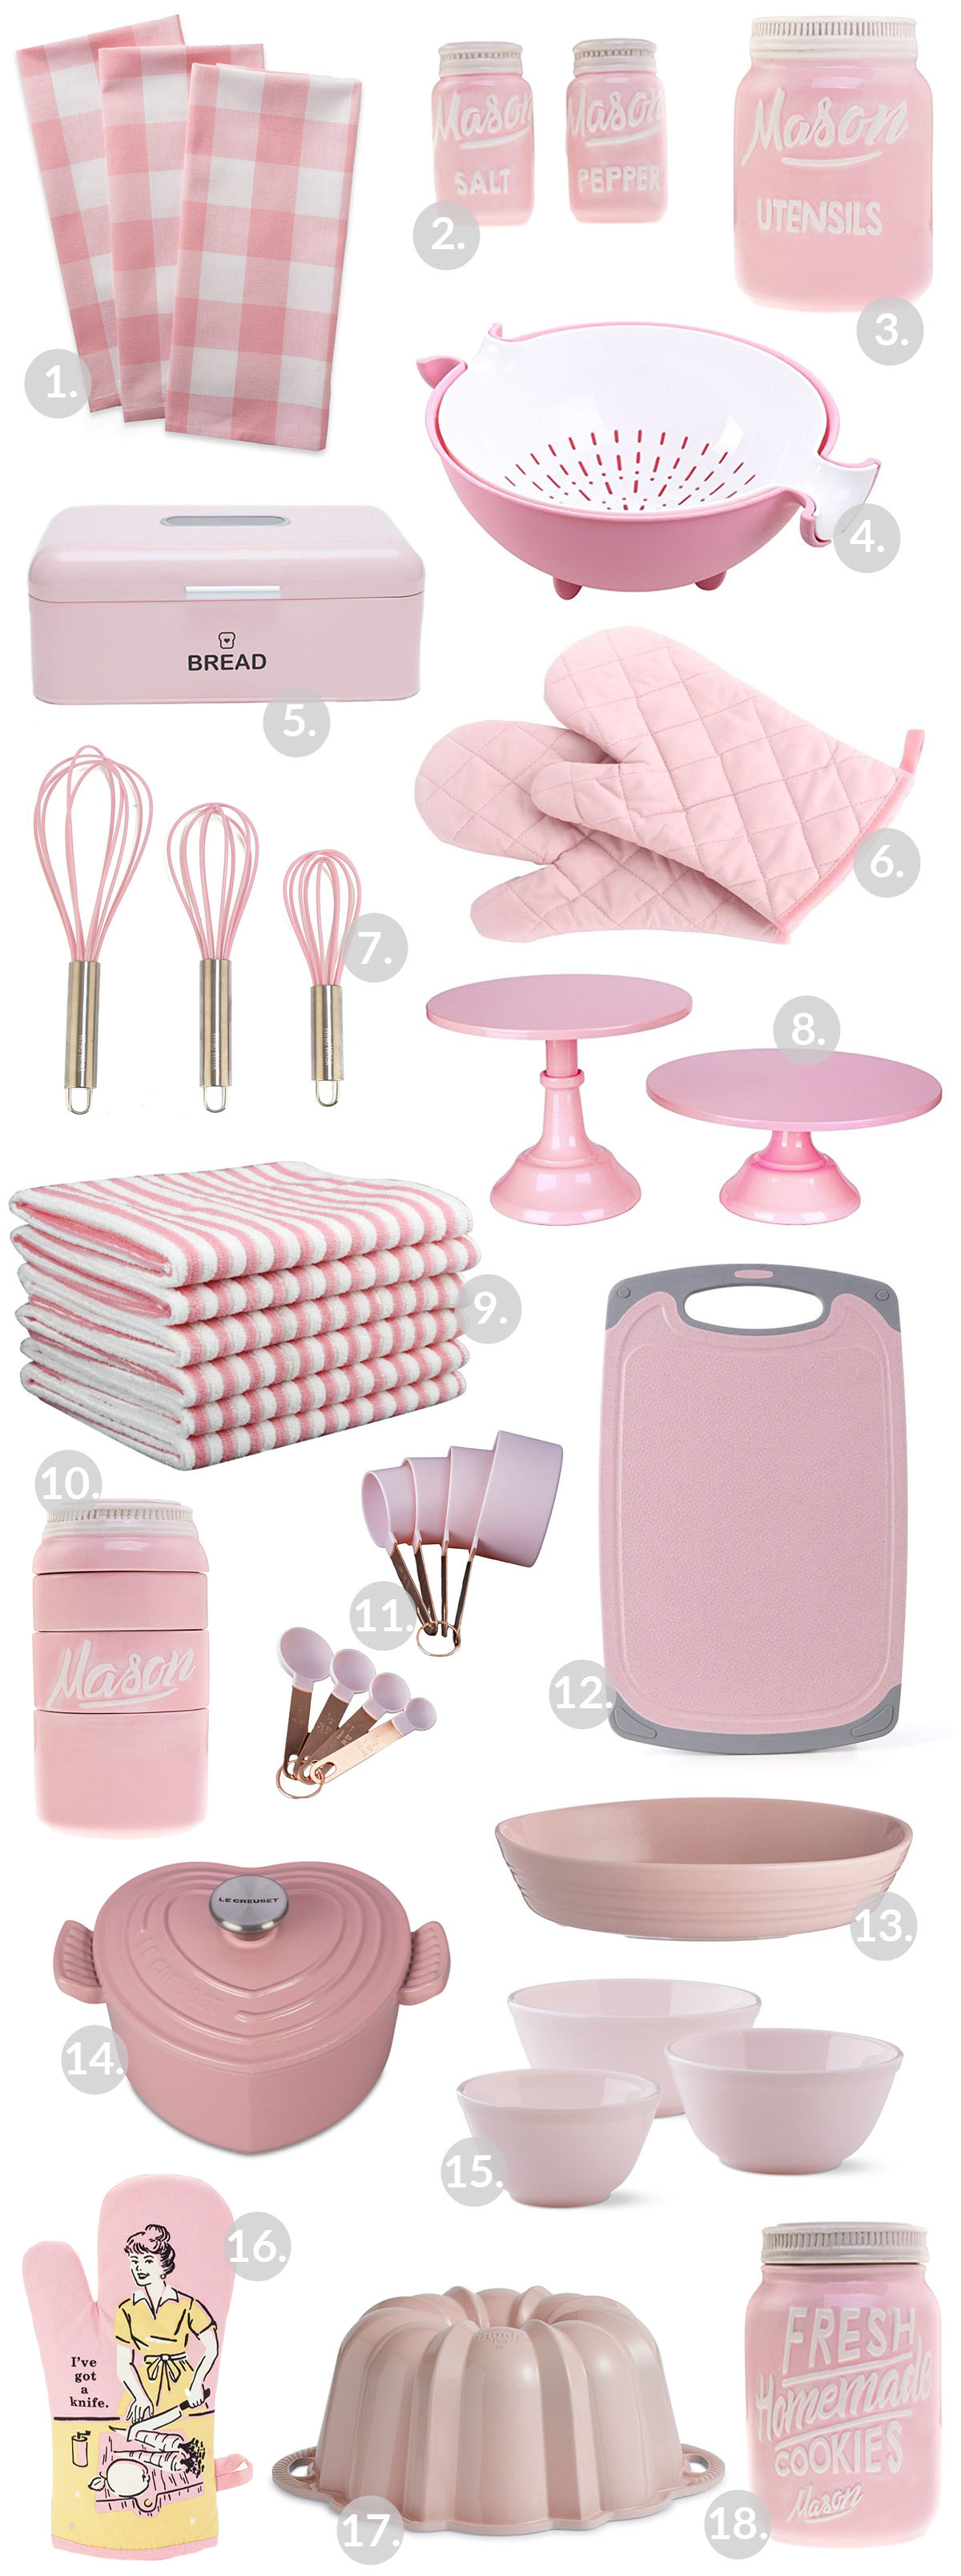 Pink Kitchen Gadgets! Great items to personalize a kitchen!